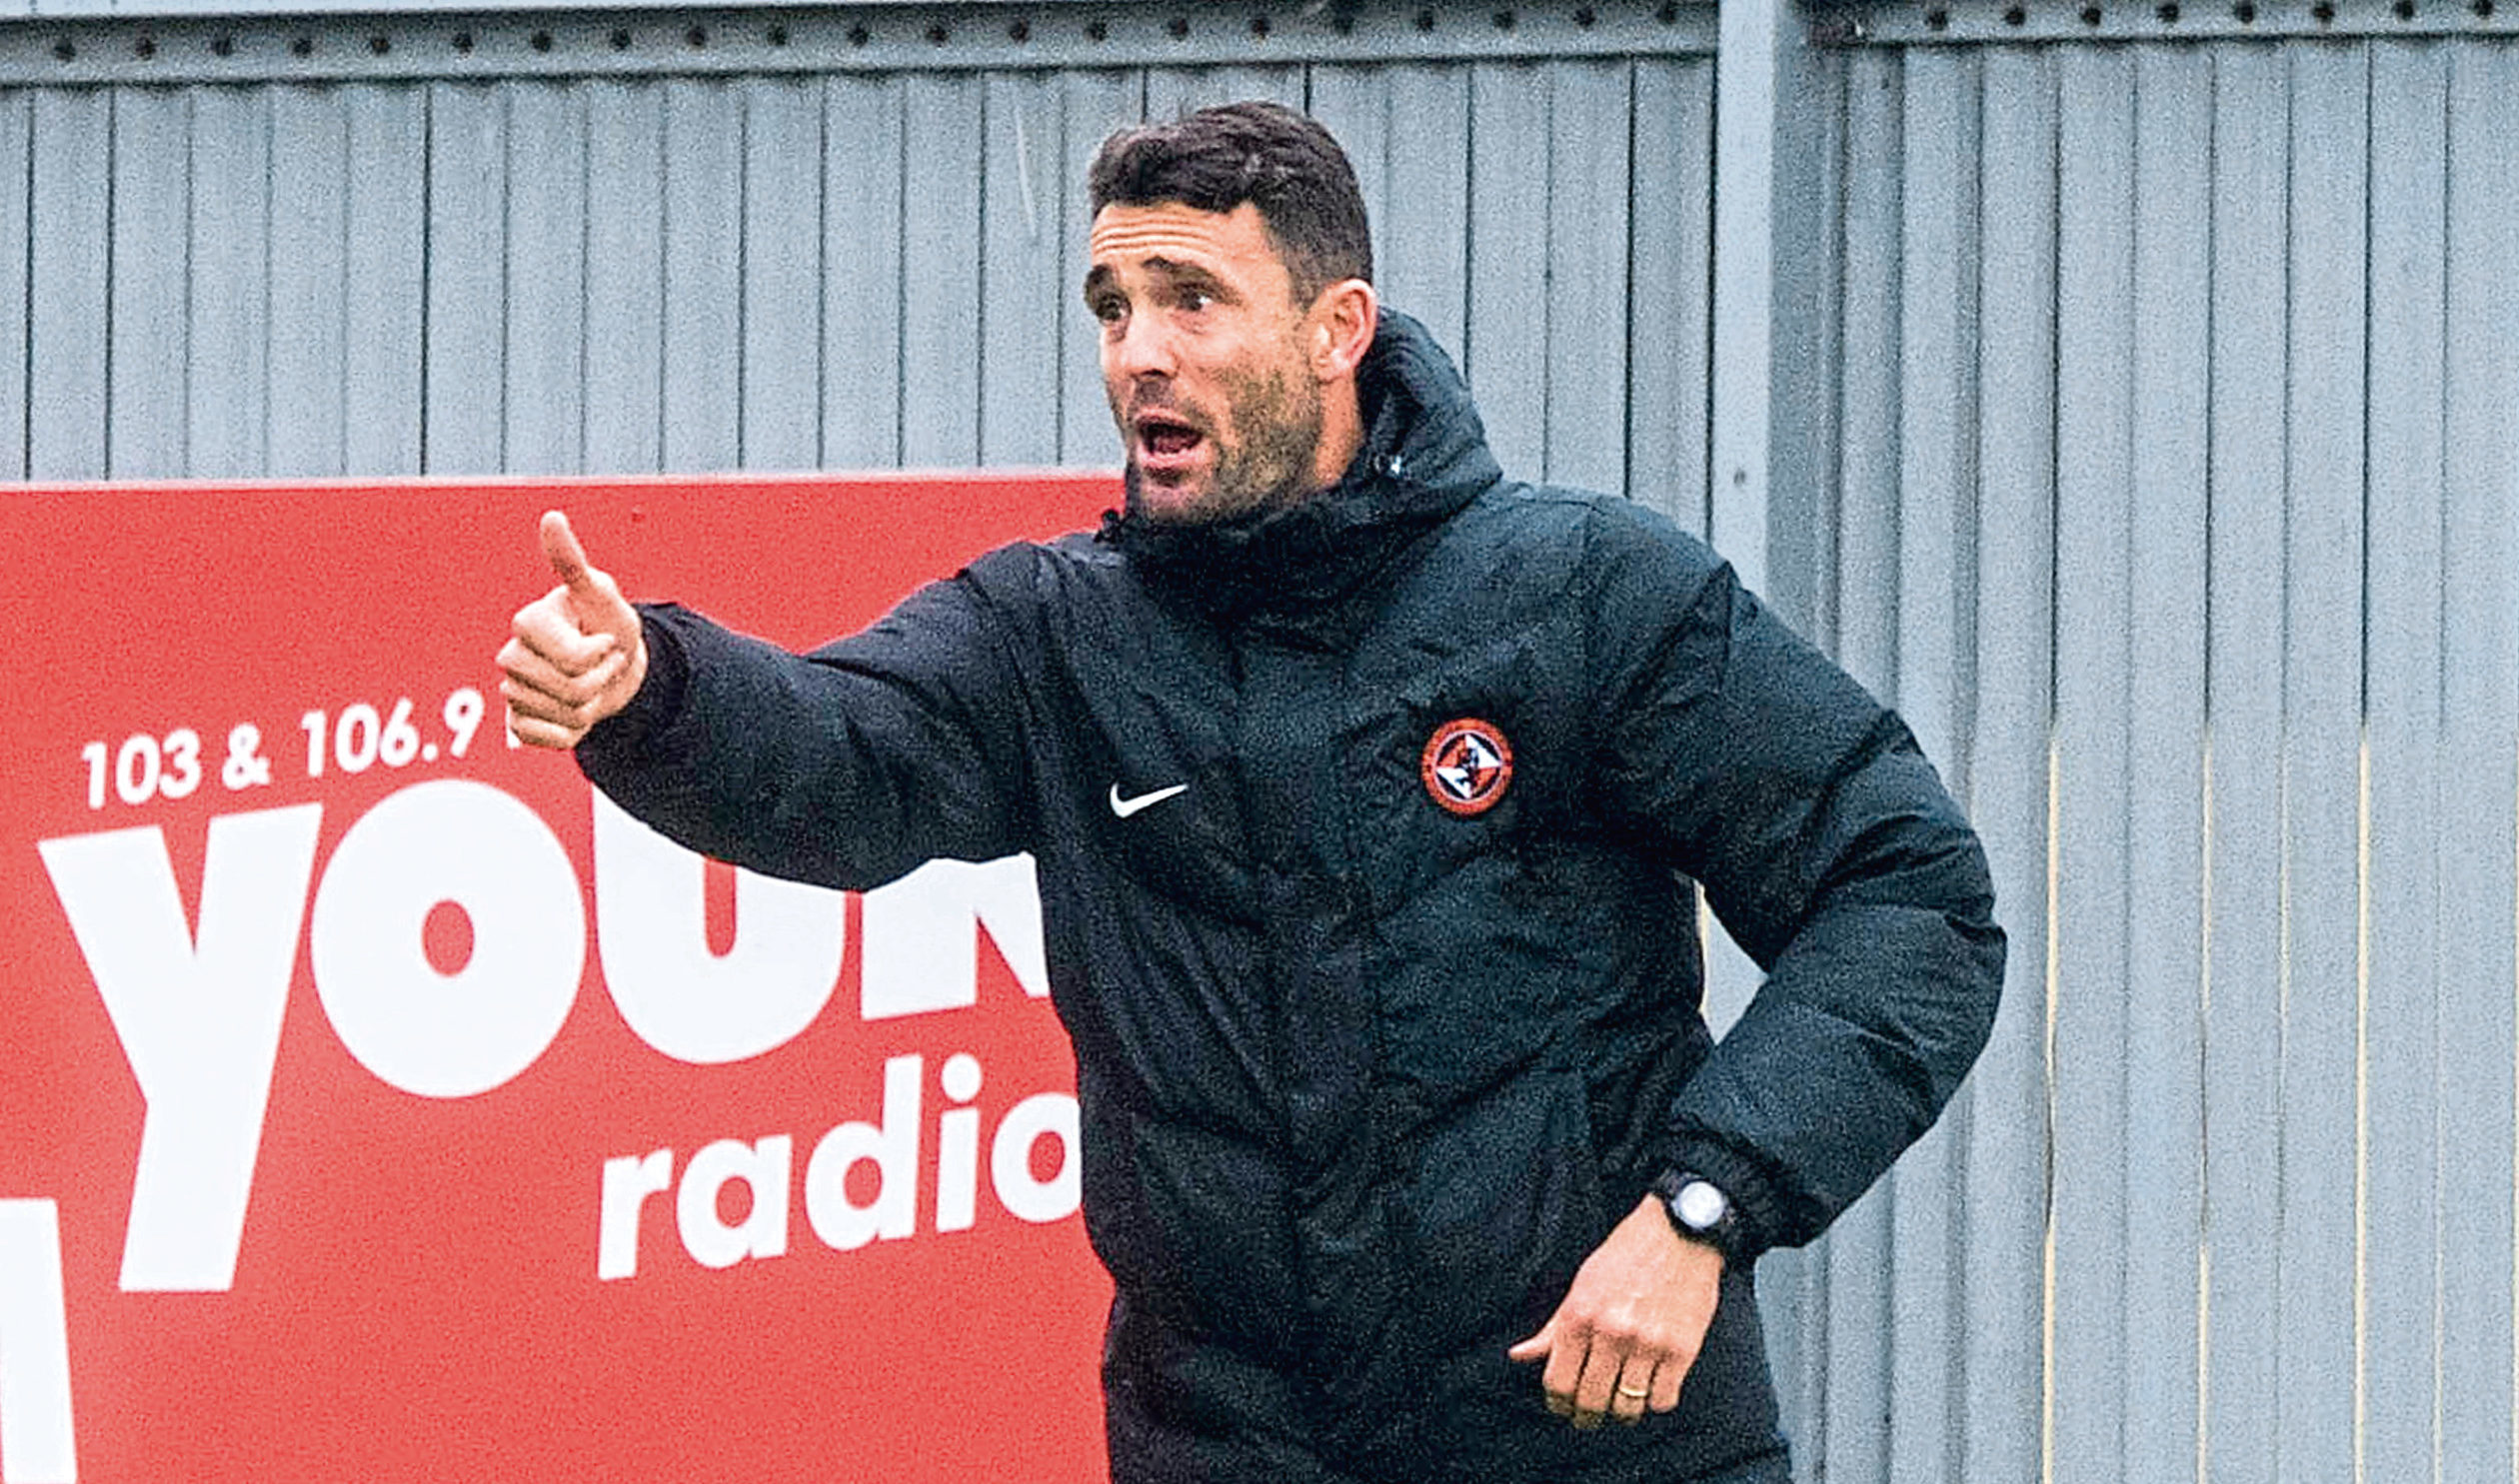 Dundee United should make Laurie Ellis their permanent boss as a replacement for Csaba Laszlo, says Tangerines legend John Holt